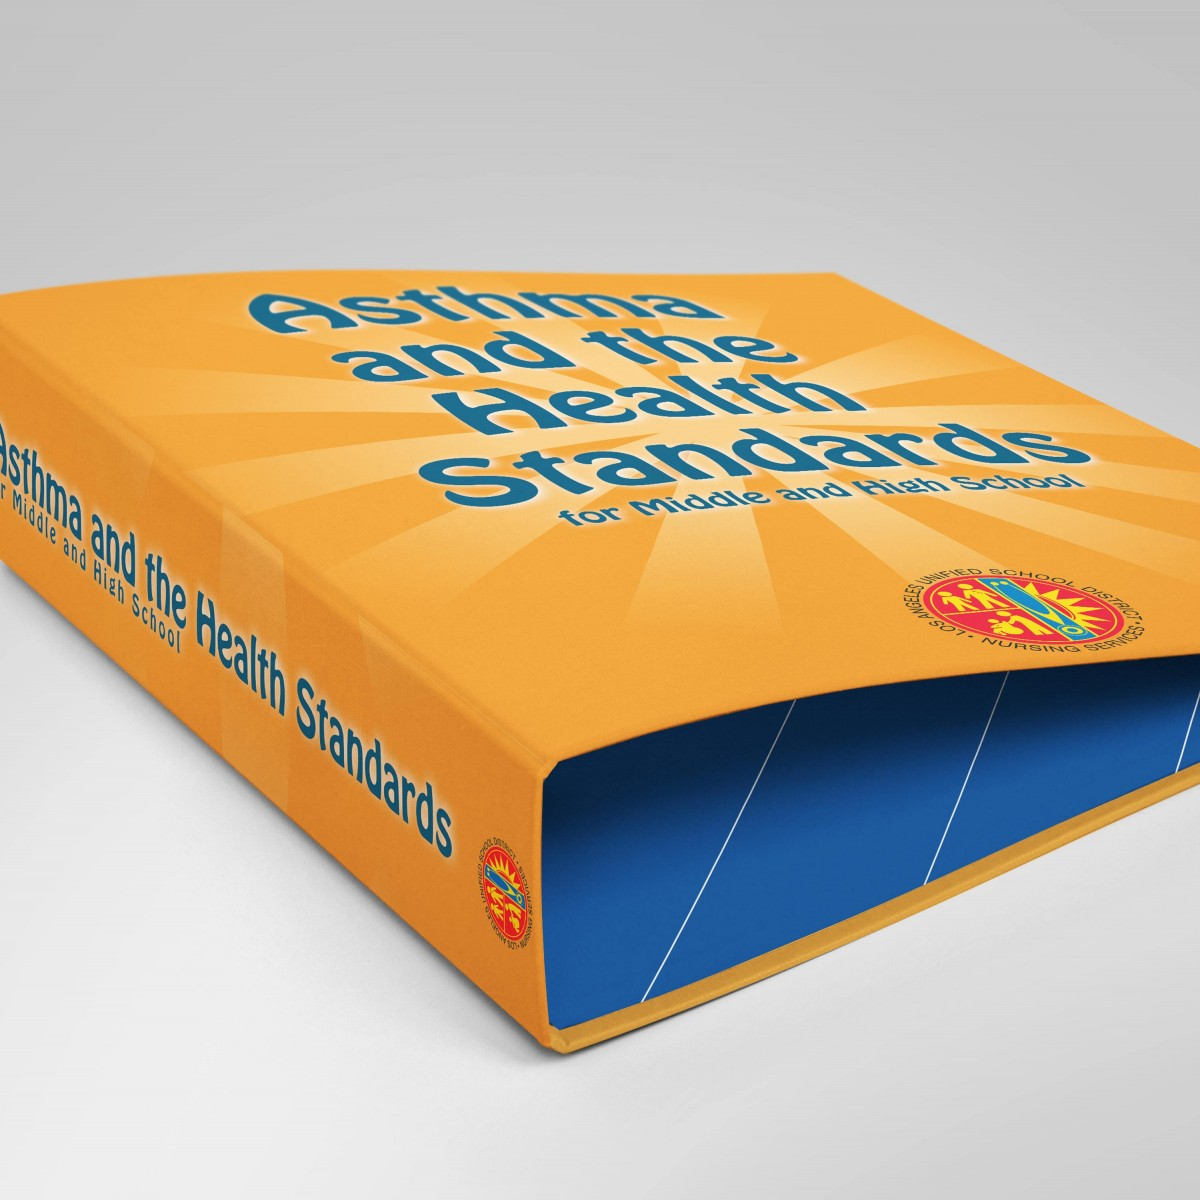 Los Angeles Unified School District asthma binder